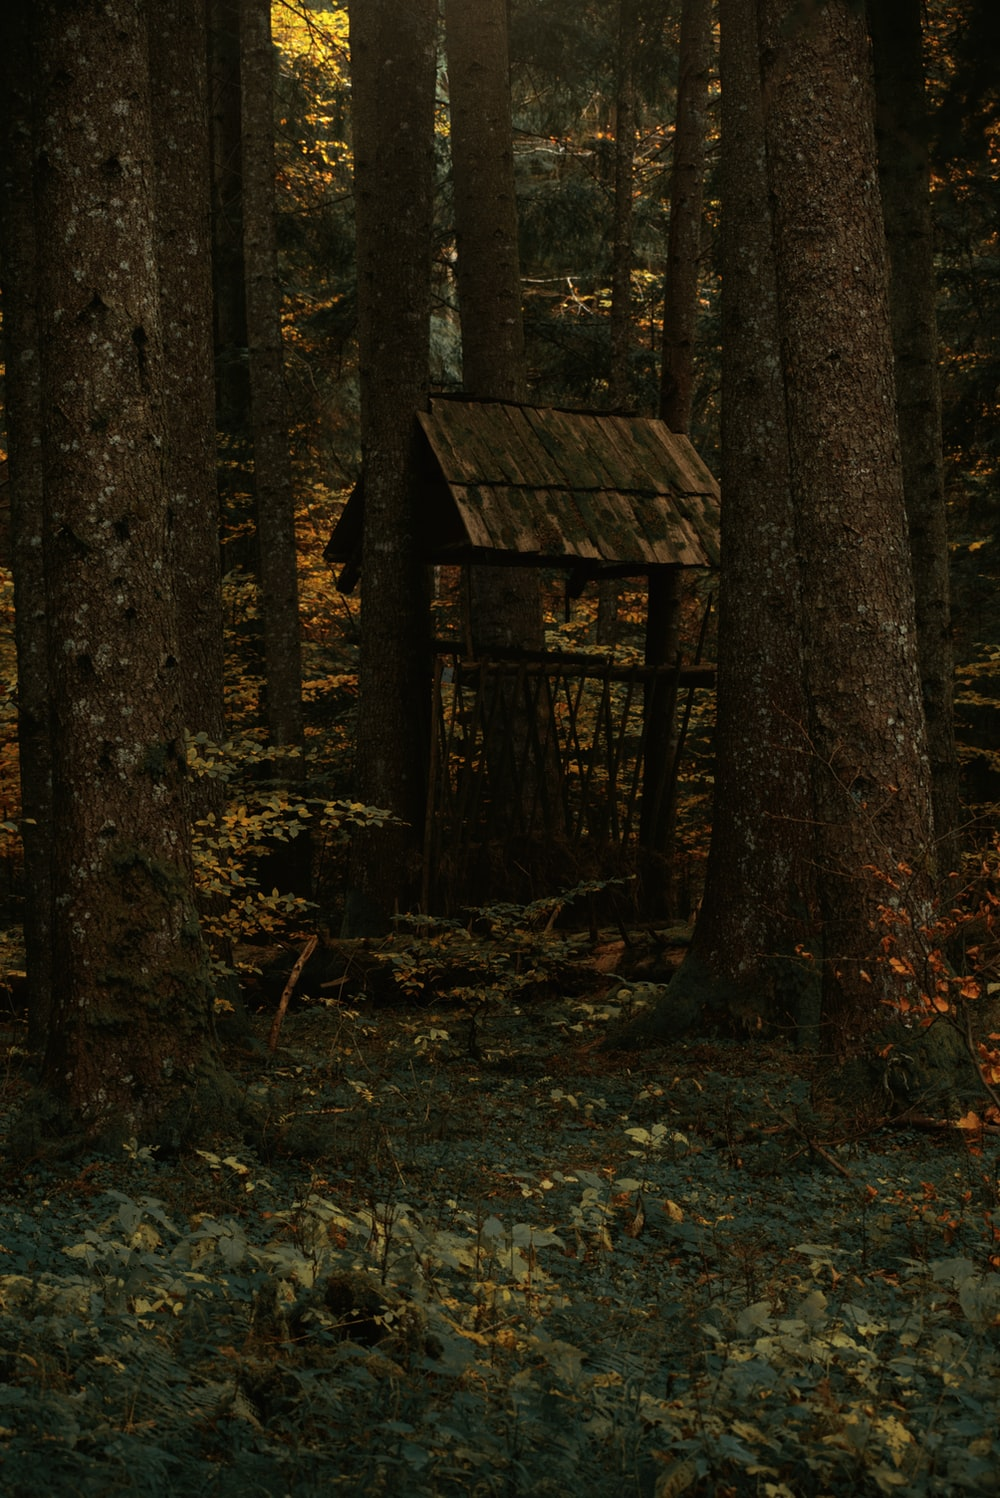 brown wooden house in the woods